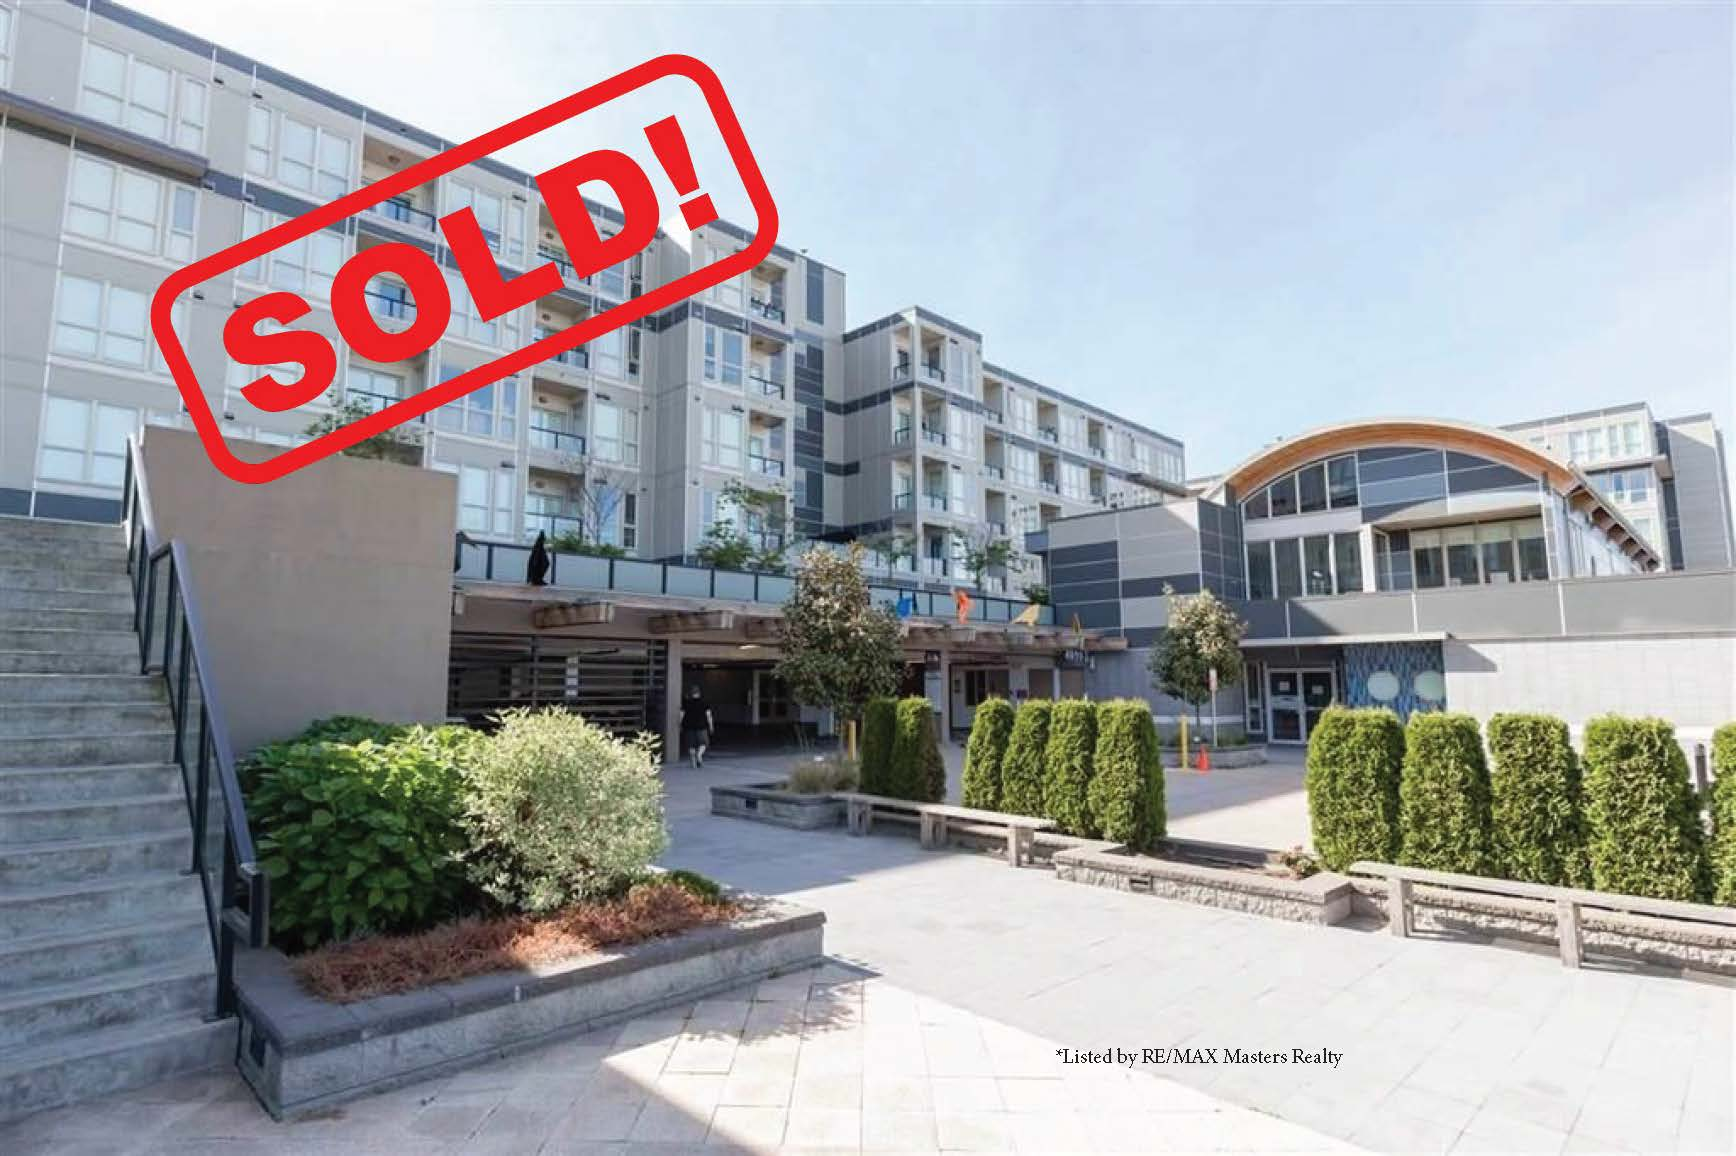 667-4099 STOLBERG STREET     SOLD FOR: $418,000  1 BED | 1 BATH | 441 SF